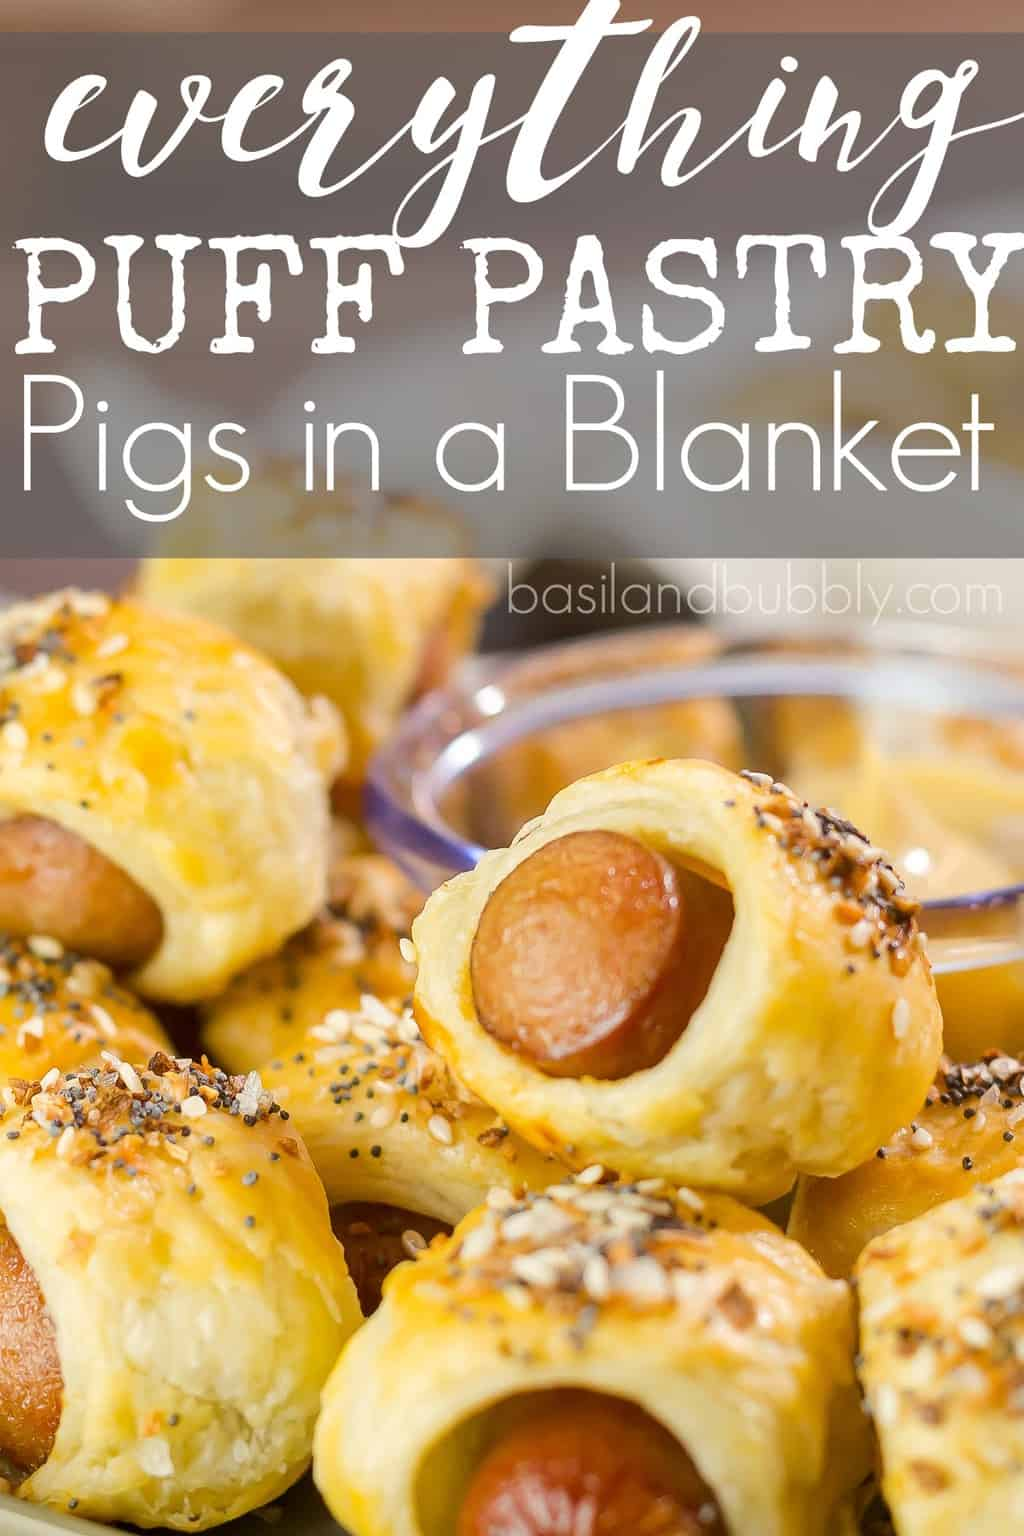 Everything Puff Pastry Pigs in a Blanket - a gourmet pig in a blanket recipe made with puff pastry and everything bagel seasoning. SO good served with mustard